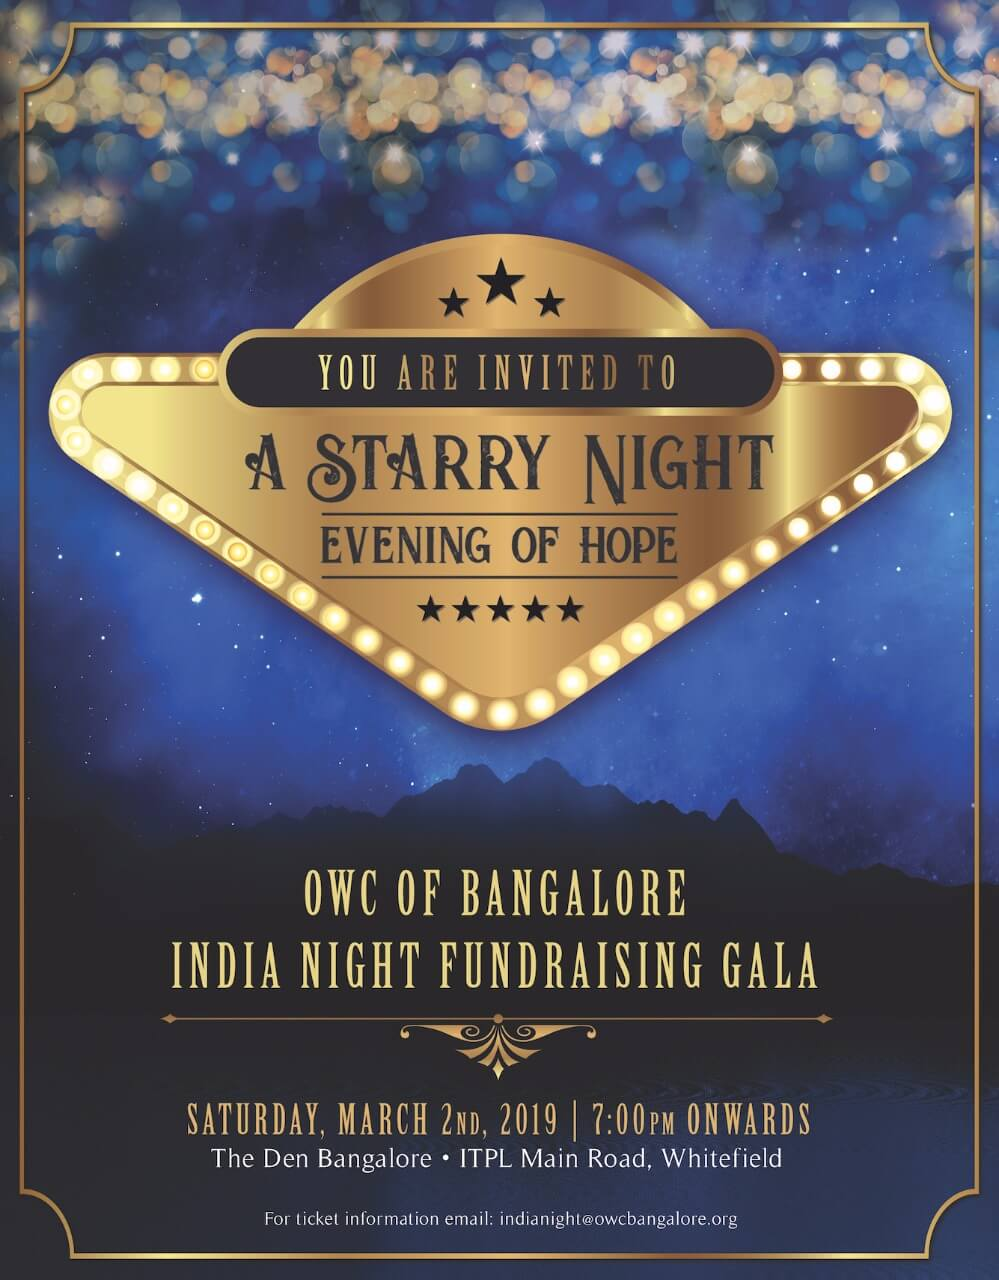 OWC OF BANGALORE INDIA NIGHT FUNDRAISING GALA - The Vine Bangalore